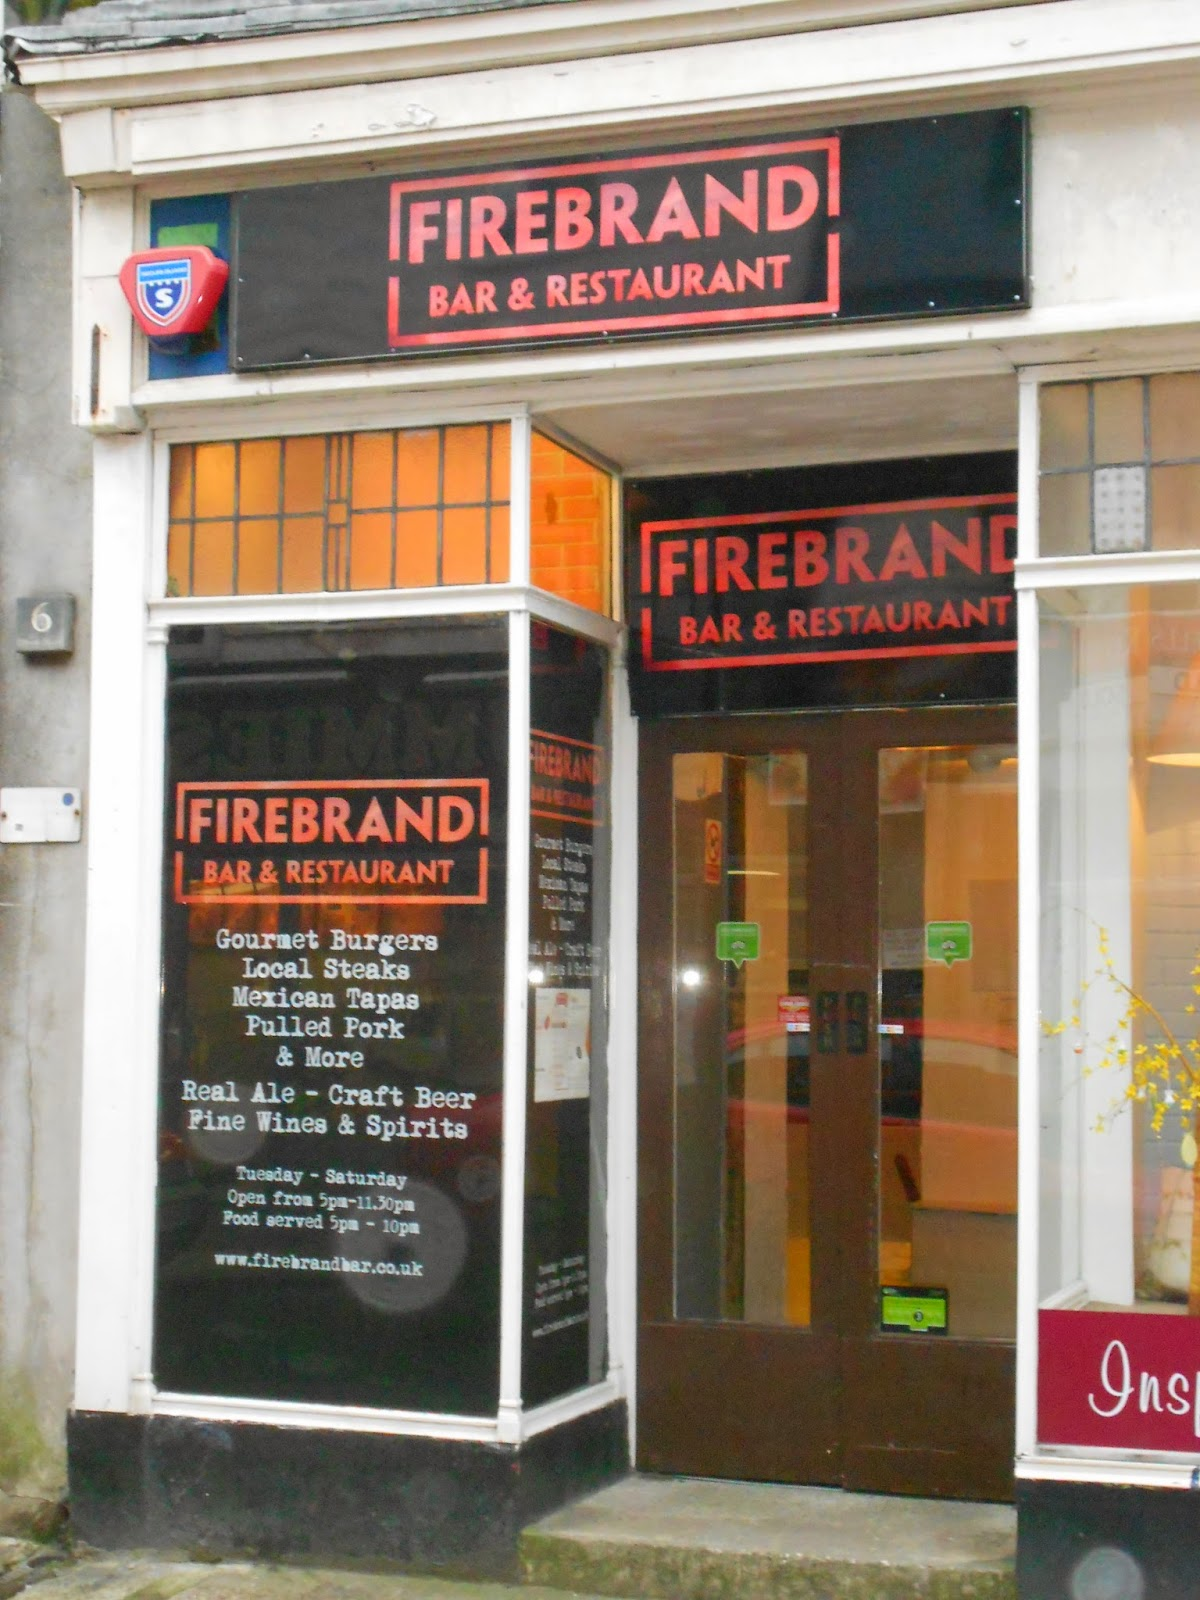 Firebrand Bar - a great venue for a game!